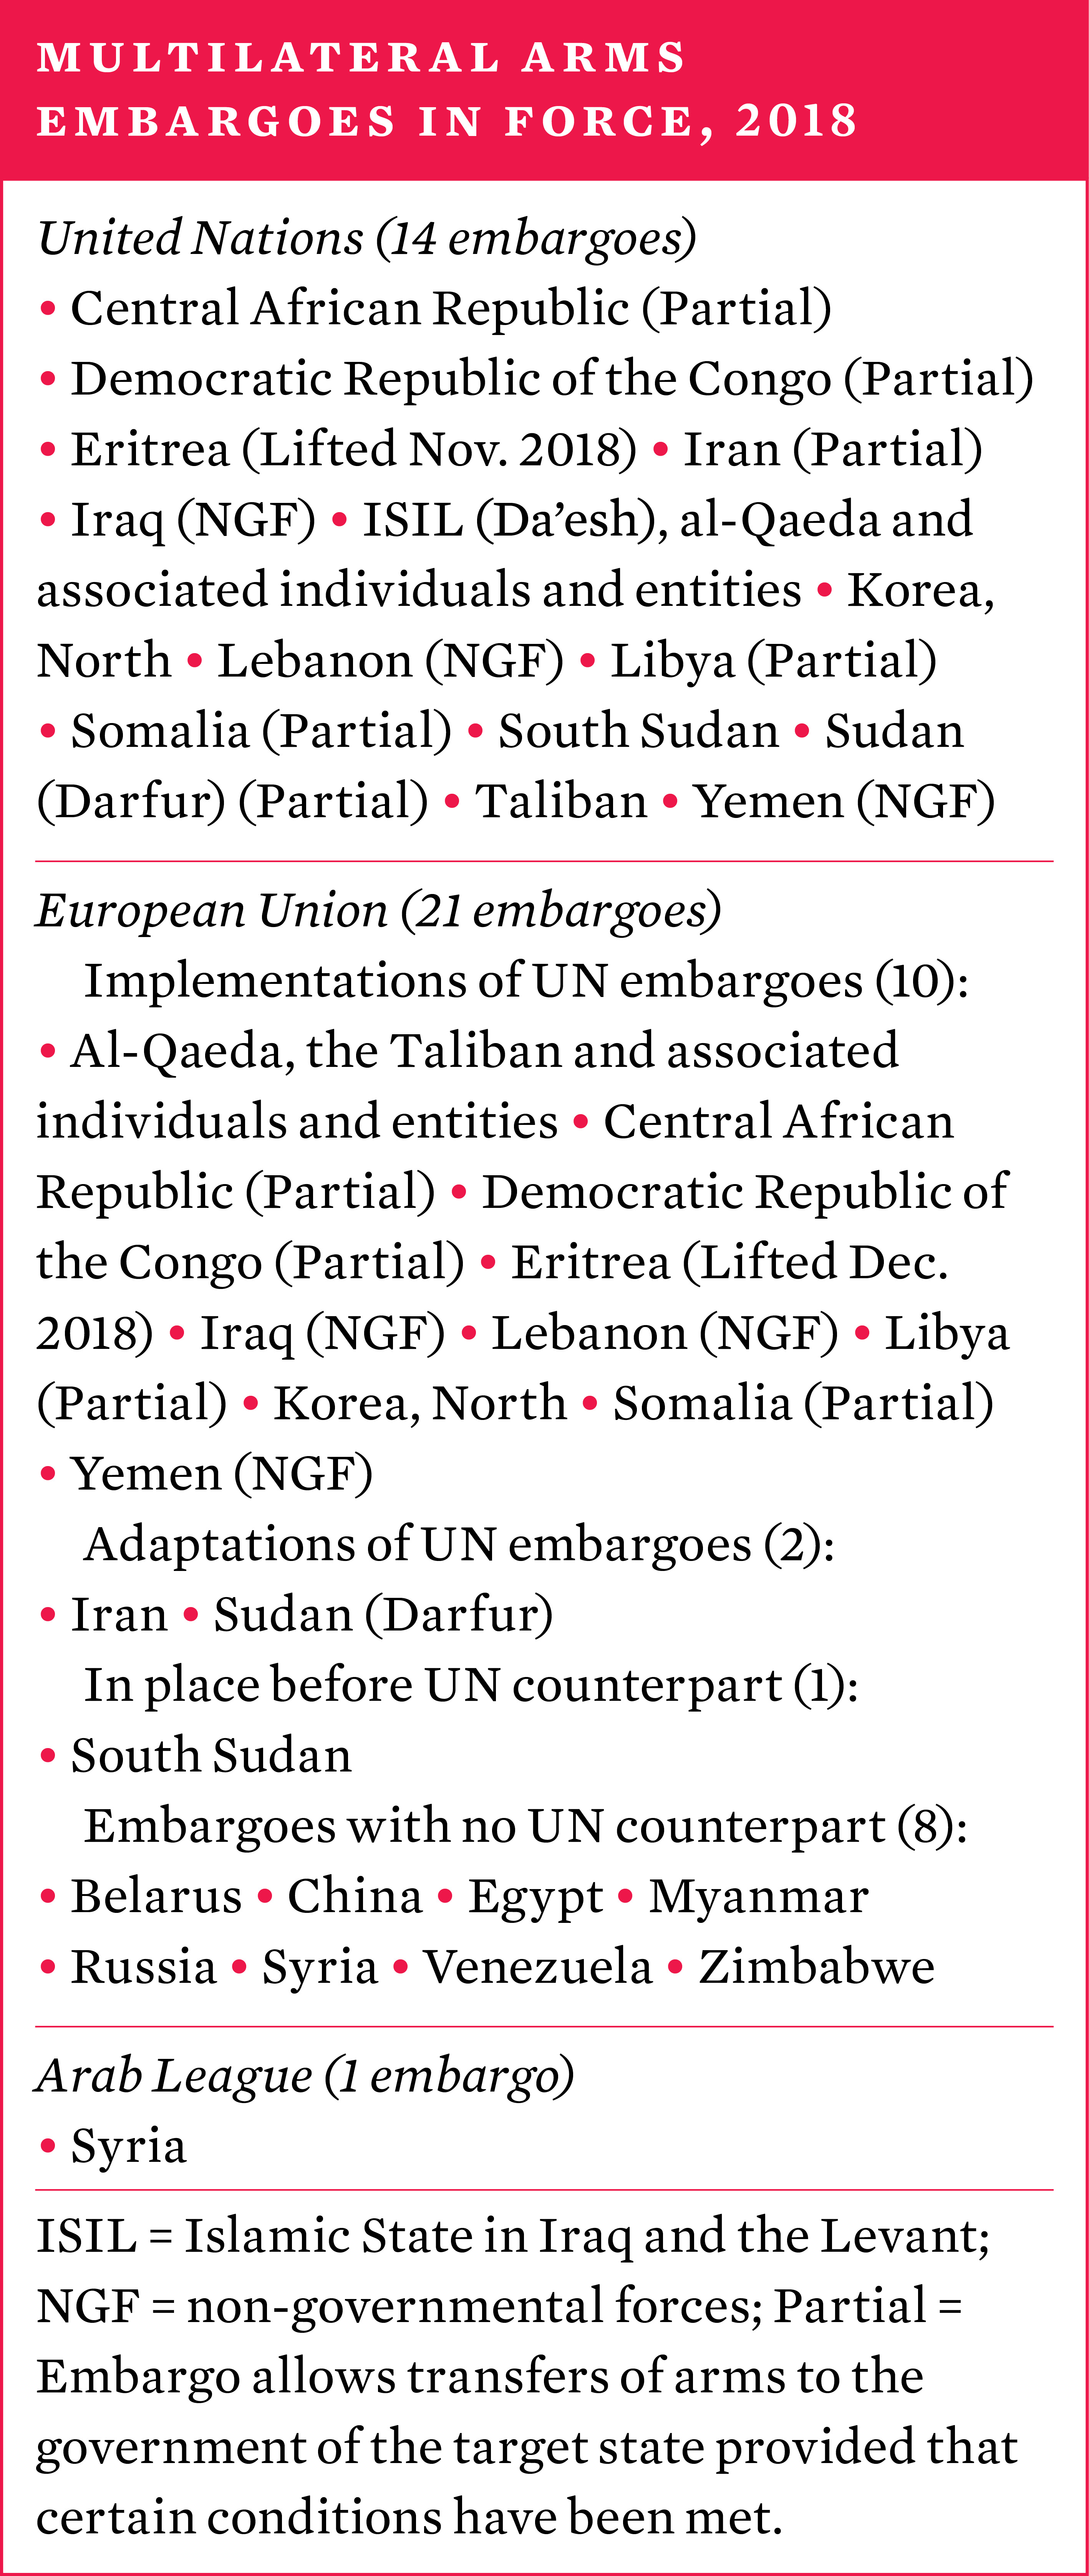 Multilateral arms embargoes in force, 2018